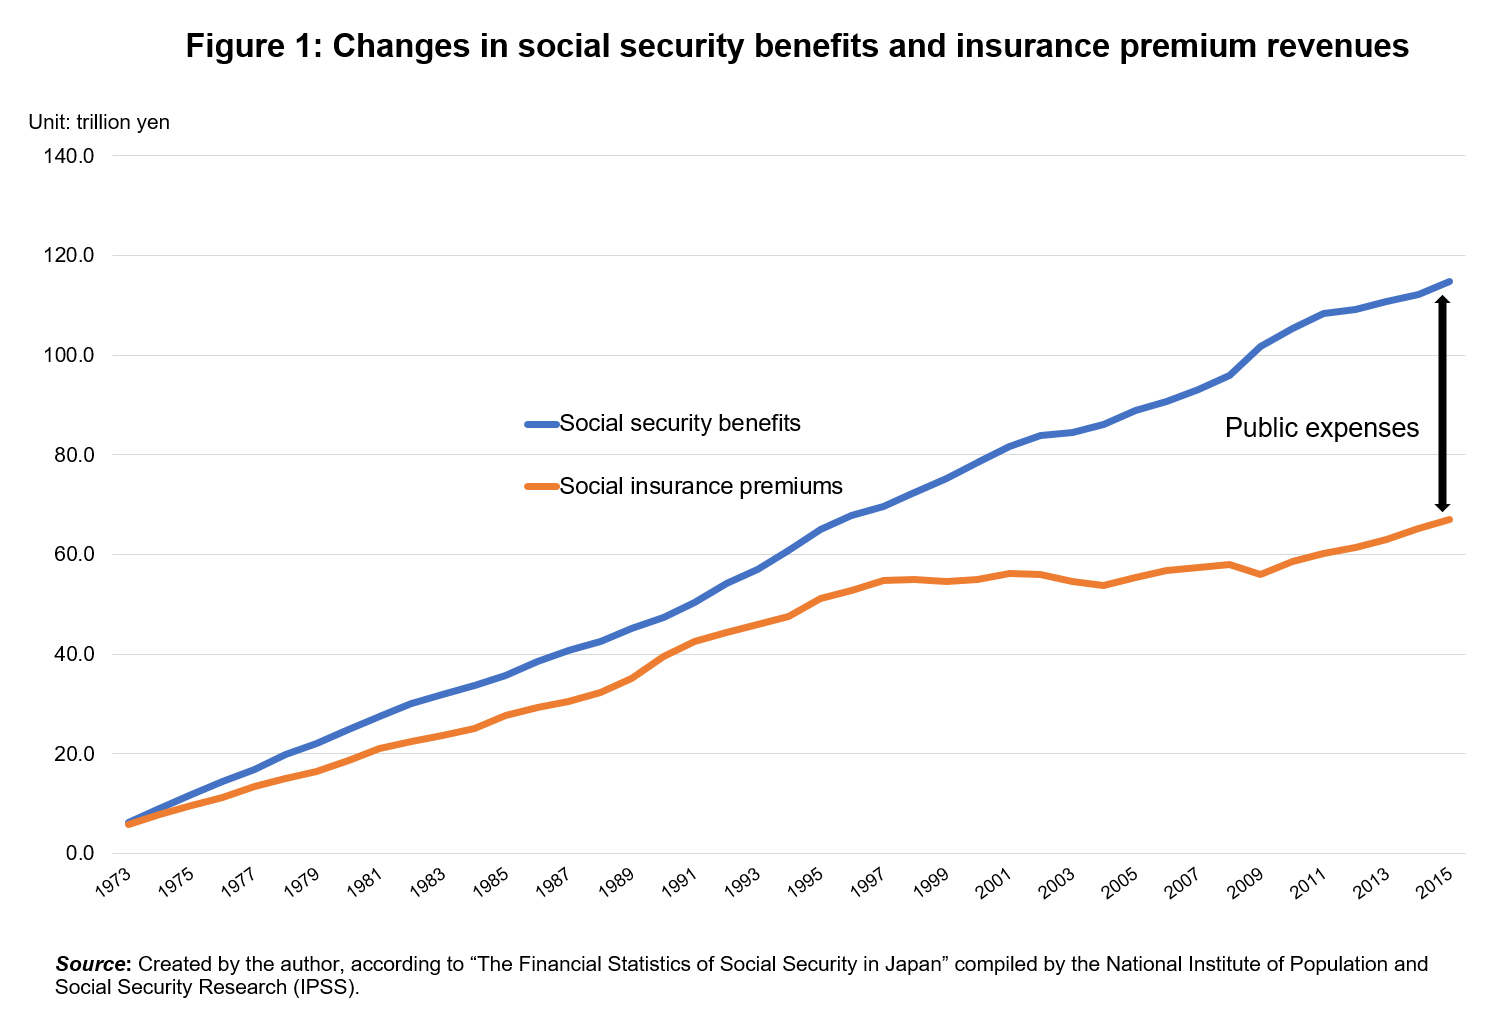 Medical and Nursing Care Expenses and Social Security